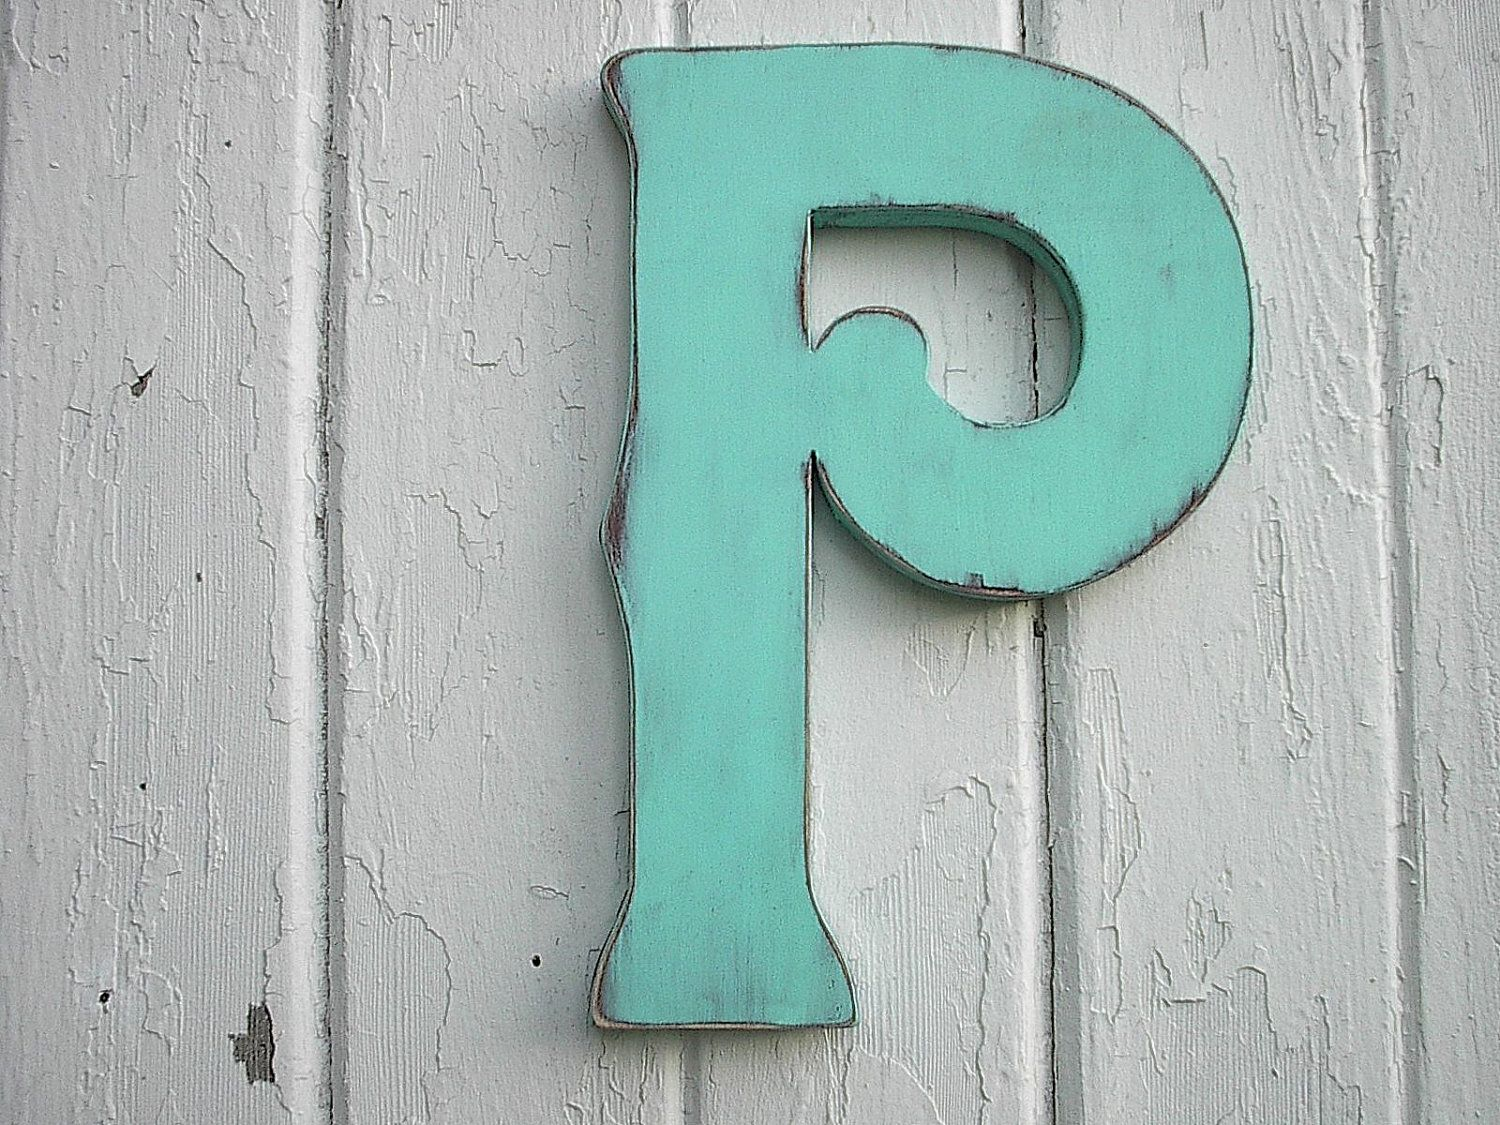 Wooden Letter P 12 Inch Tall Handmade Letter Hand Painted Patina Wall Decor Wood Art Nursery Kids Room S Letter Wall Art Wooden Monogram Letters Art Wall Kids